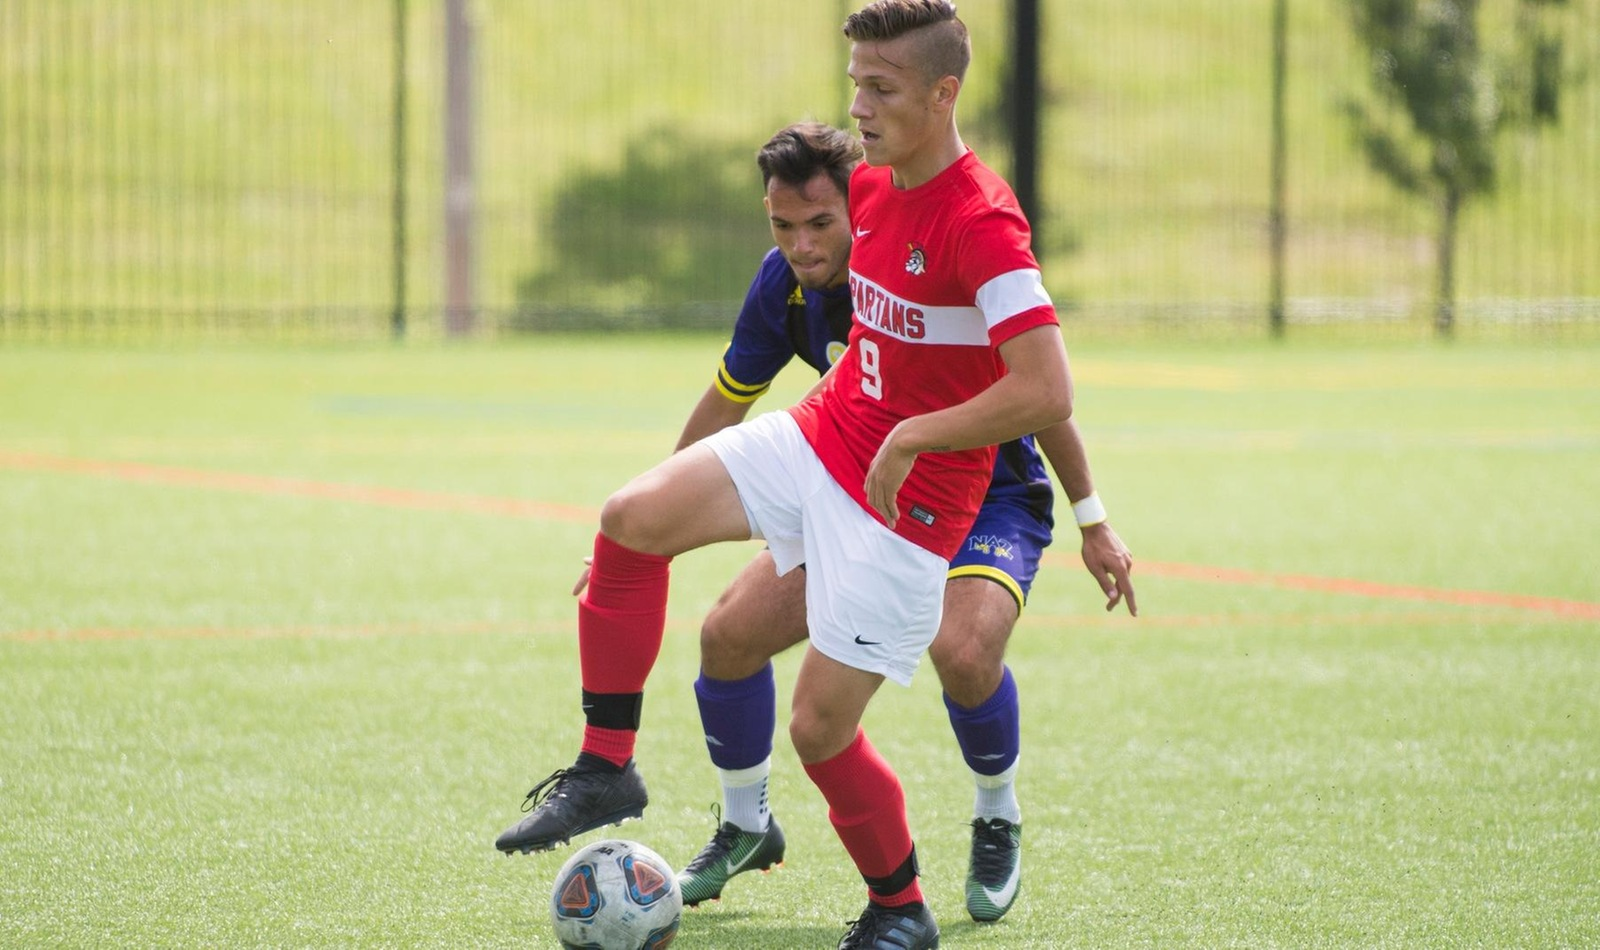 Men's Soccer Clinch Final Spot in AMCC Playoffs with Tie Against Bradford